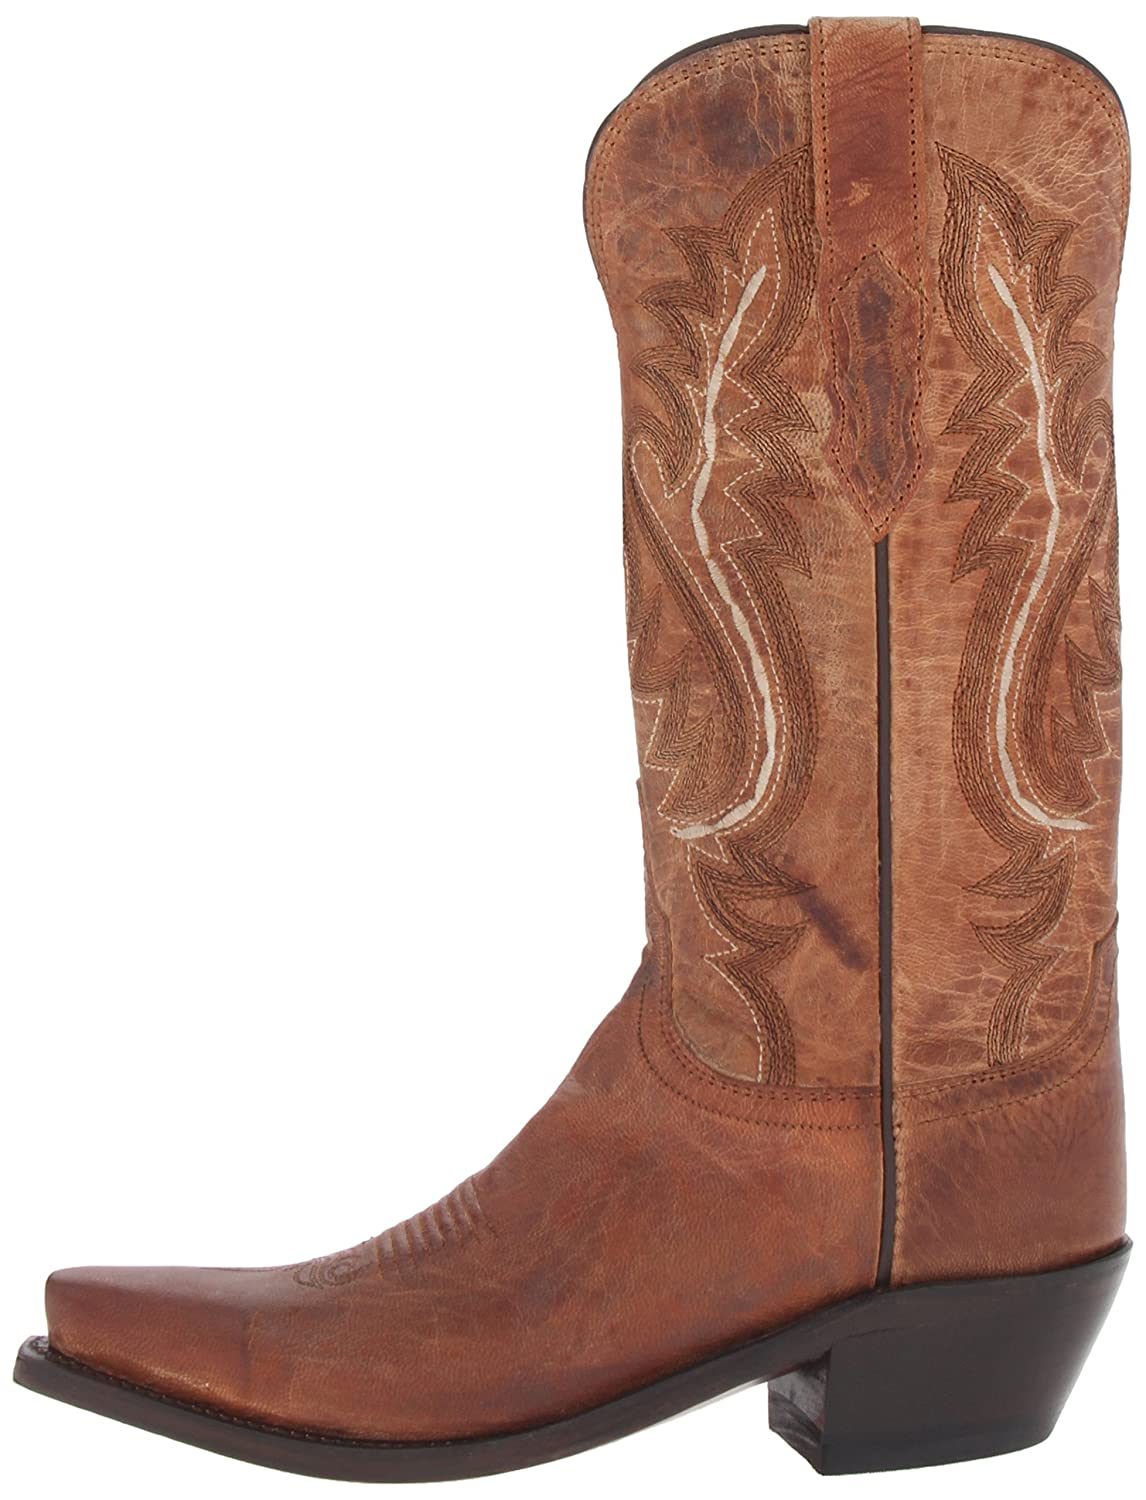 Lucchese Bootmaker Women's Cassidy-Tan Mad Dog Goat Riding Boot B00CU70CX6 8 B(M) US|Tan